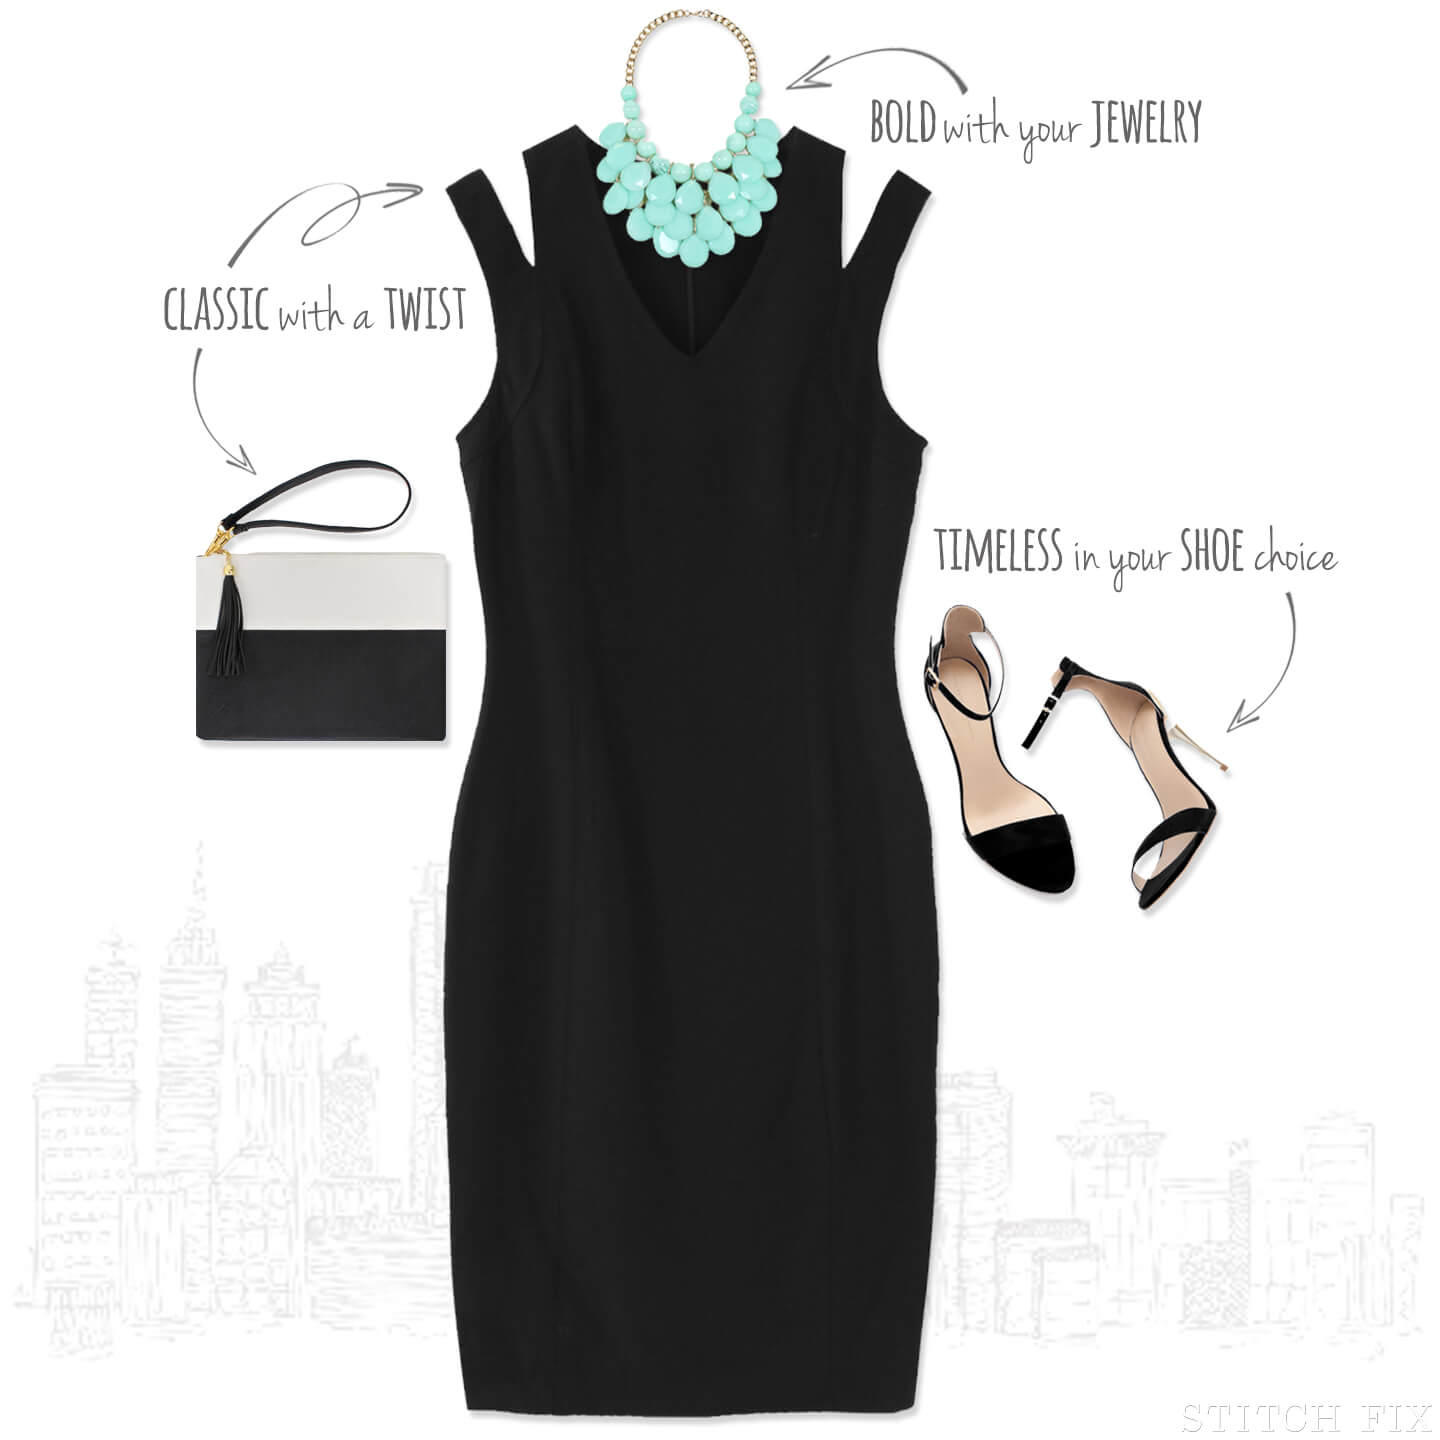 1 dress 3 ways, wedding (Black Tie)